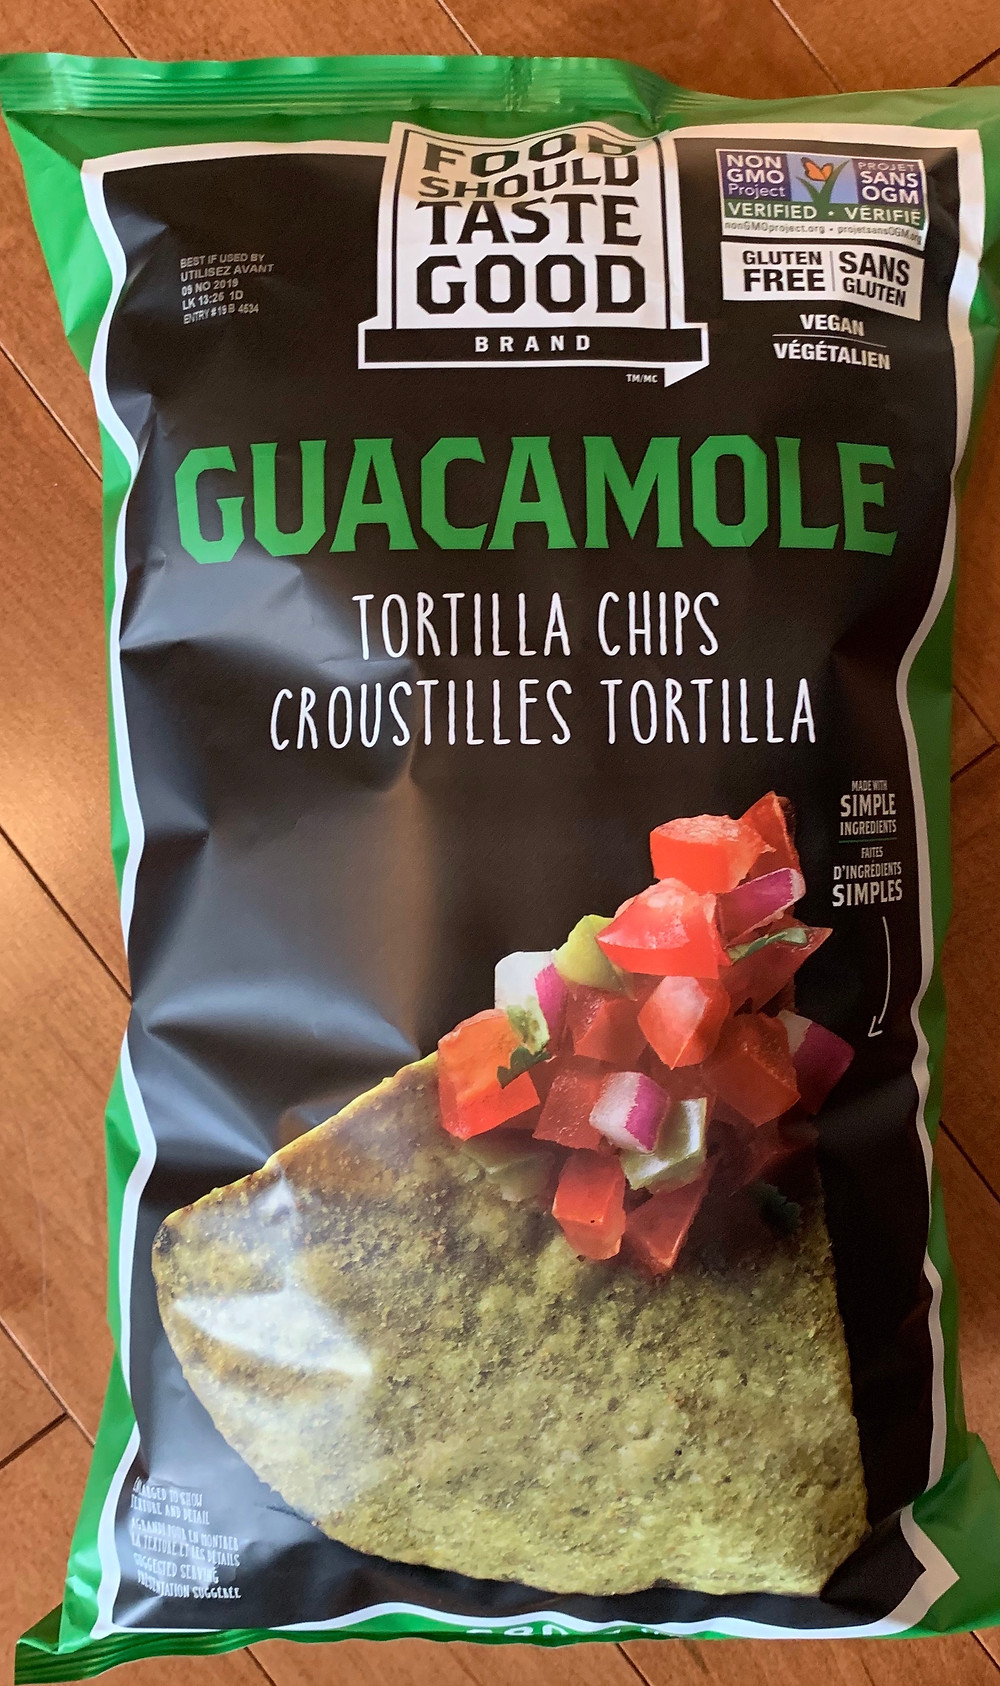 Costco Food Should Taste Good Guacamole Tortilla Chips